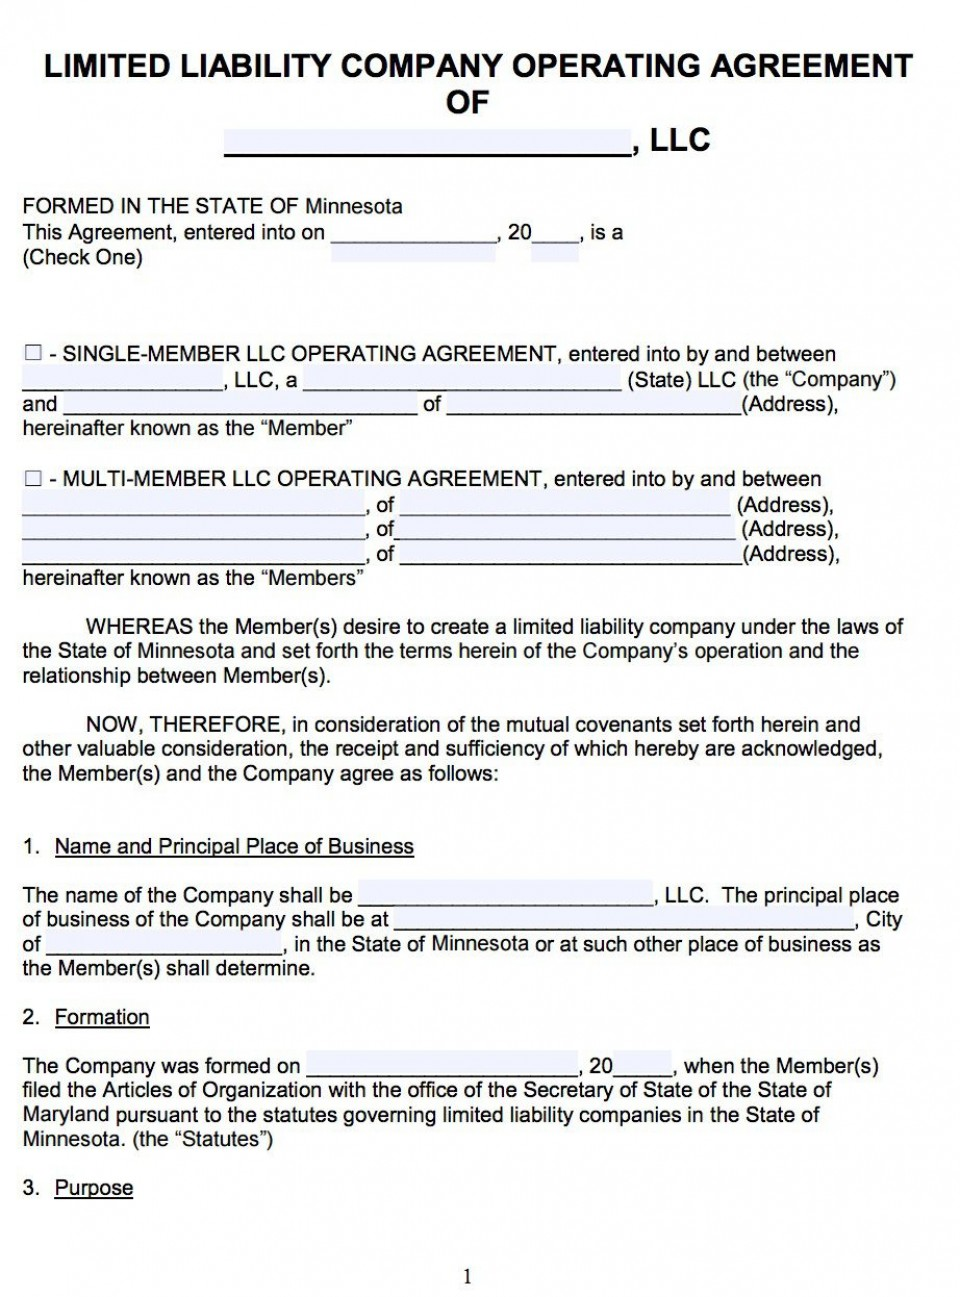 007 Awesome Llc Partnership Agreement Template High Resolution  Free Operating960